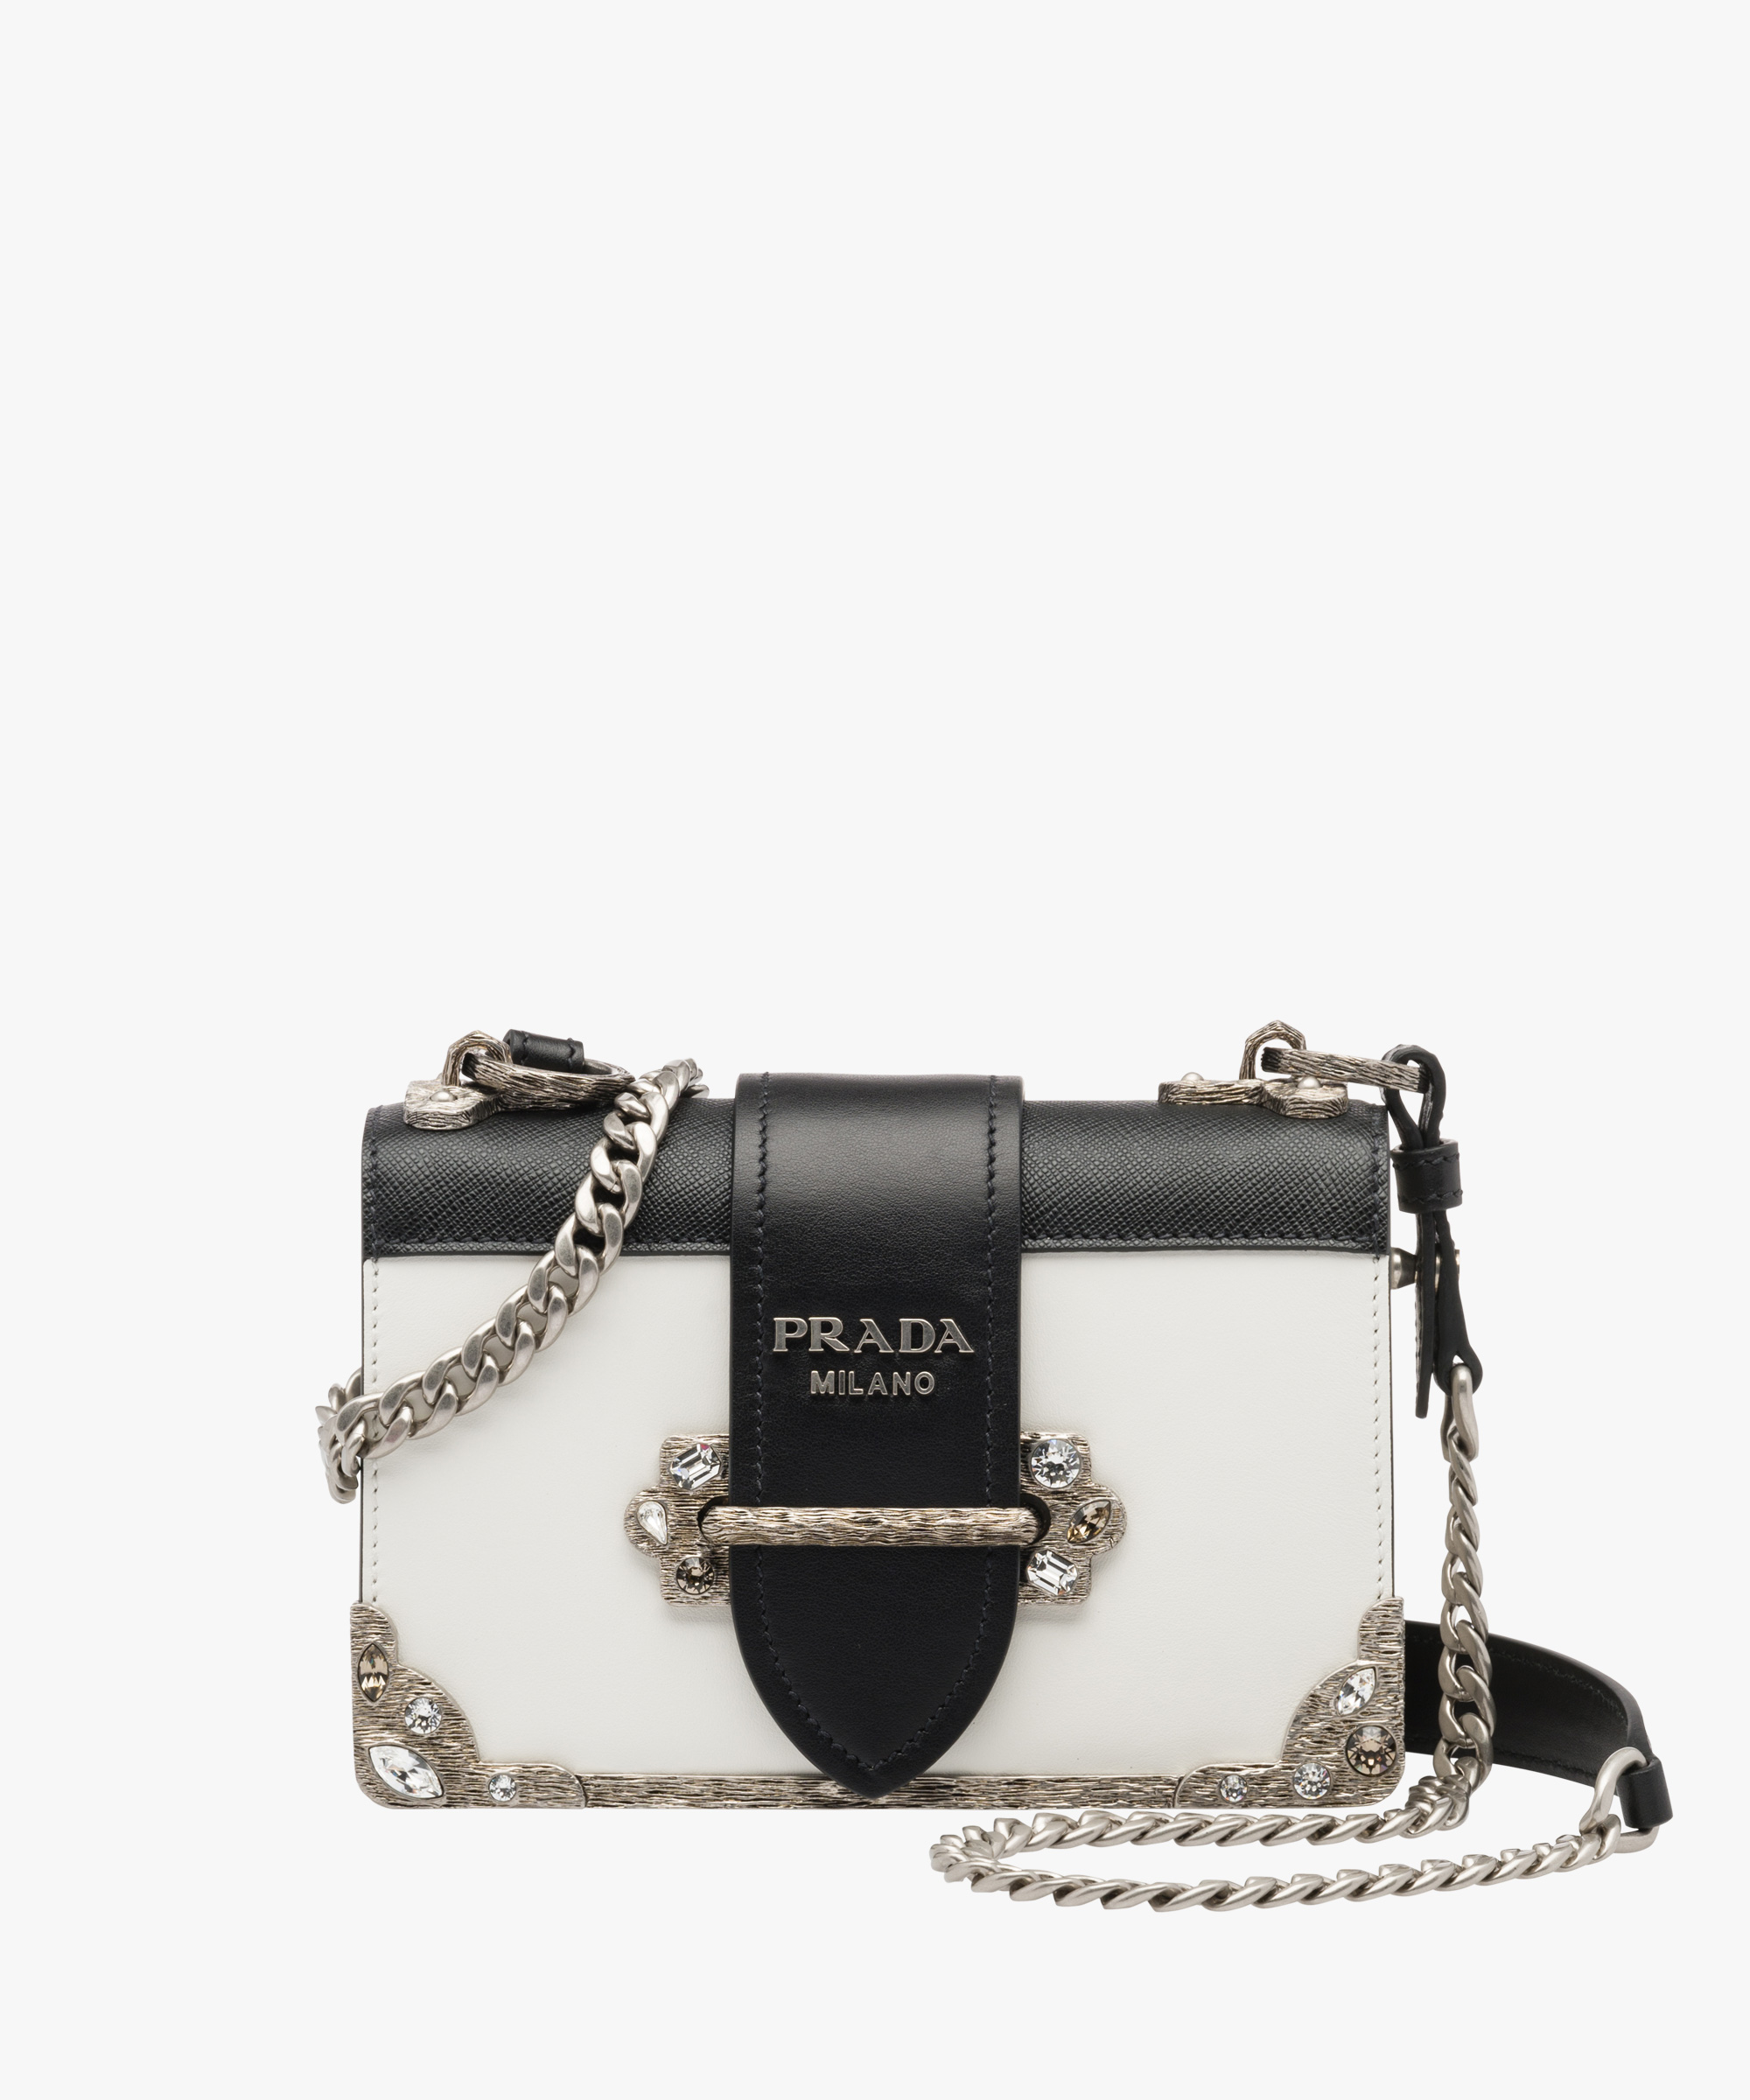 f7a19a073112 ... Prada Cahier leather shoulder bag Prada WHITE/BLACK ...